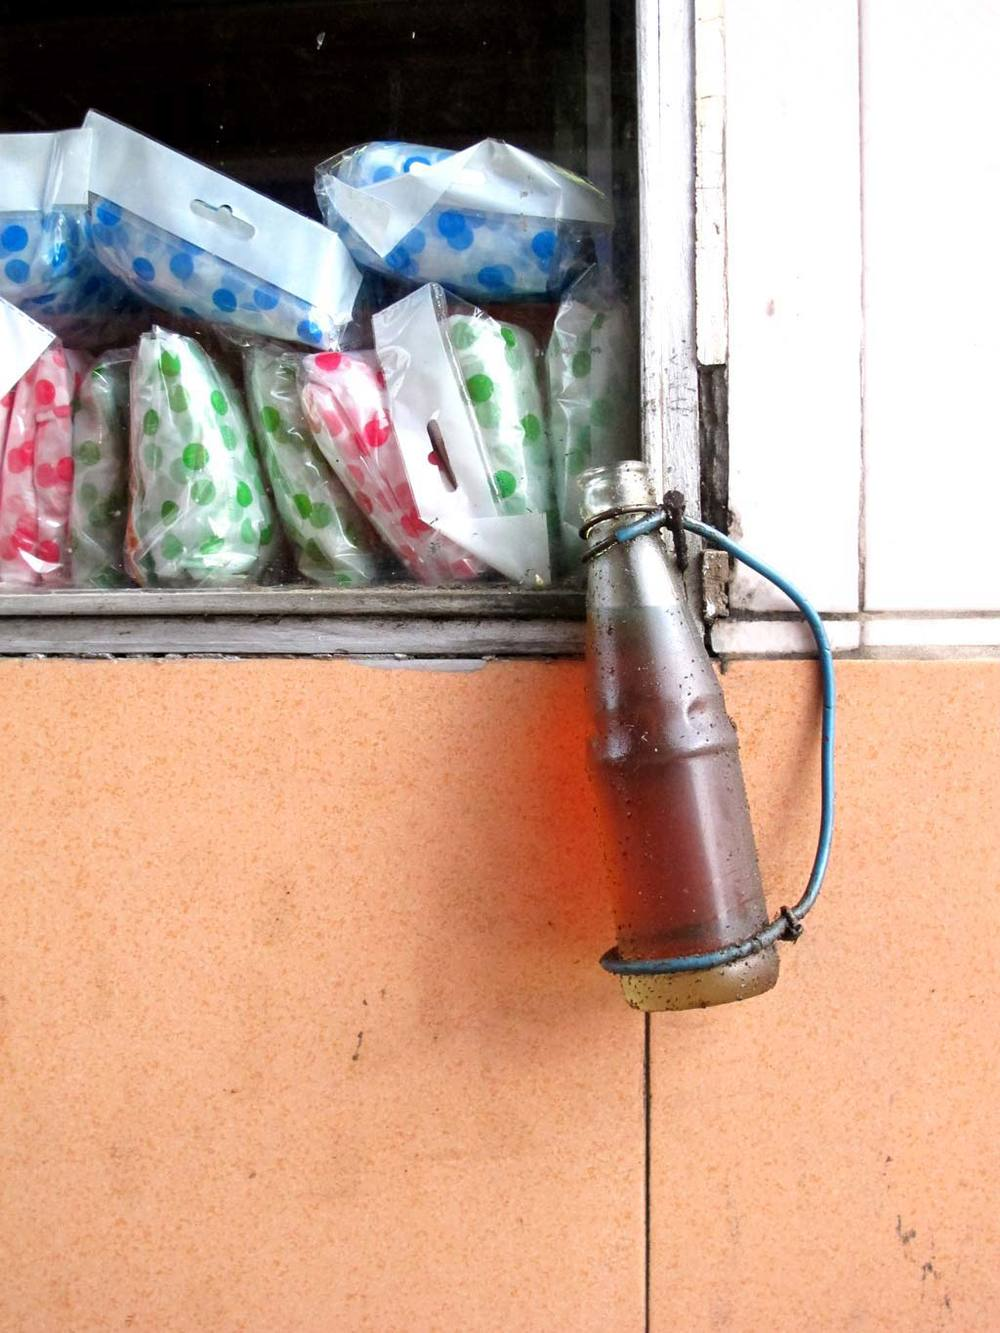 DIY liquid container of a glass bottle in a gas station. #VietnamInObjects / sergivich.com